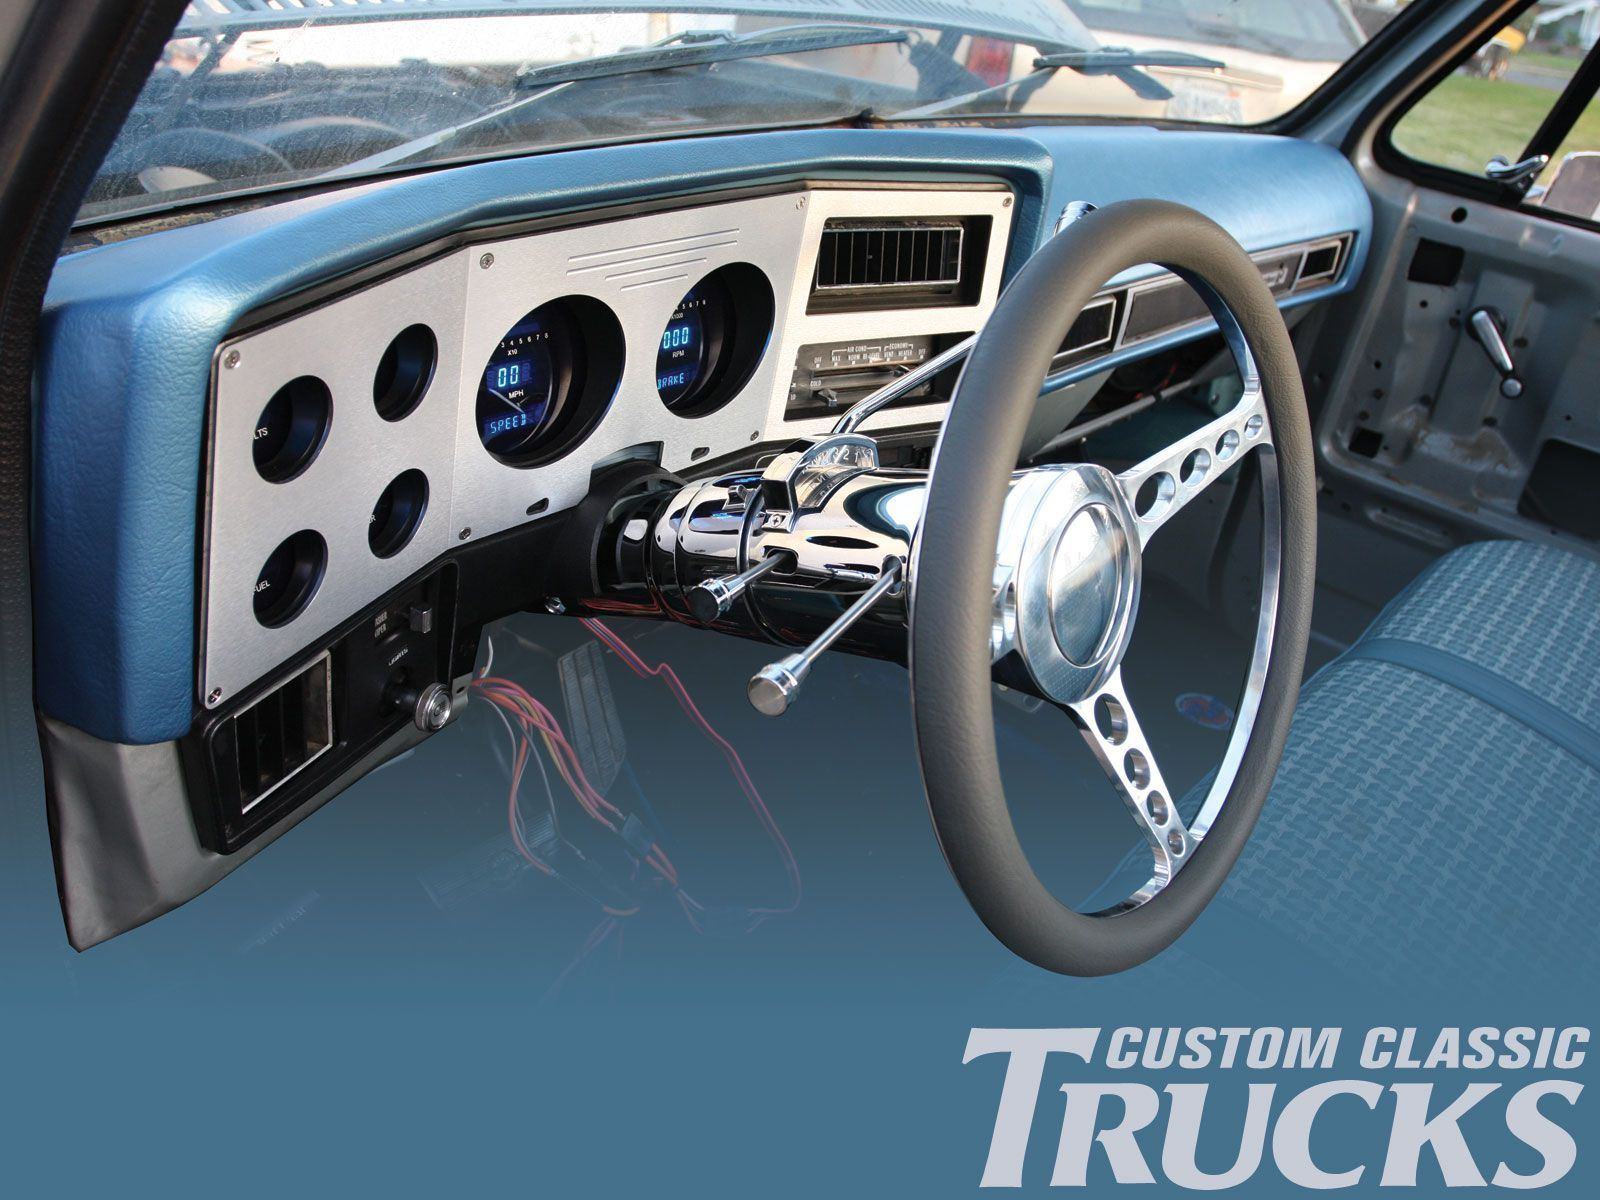 Aftermarket Parts For 1985 Chevy Truck 1985 Chevy Truck Chevy Trucks 1978 Chevy Truck